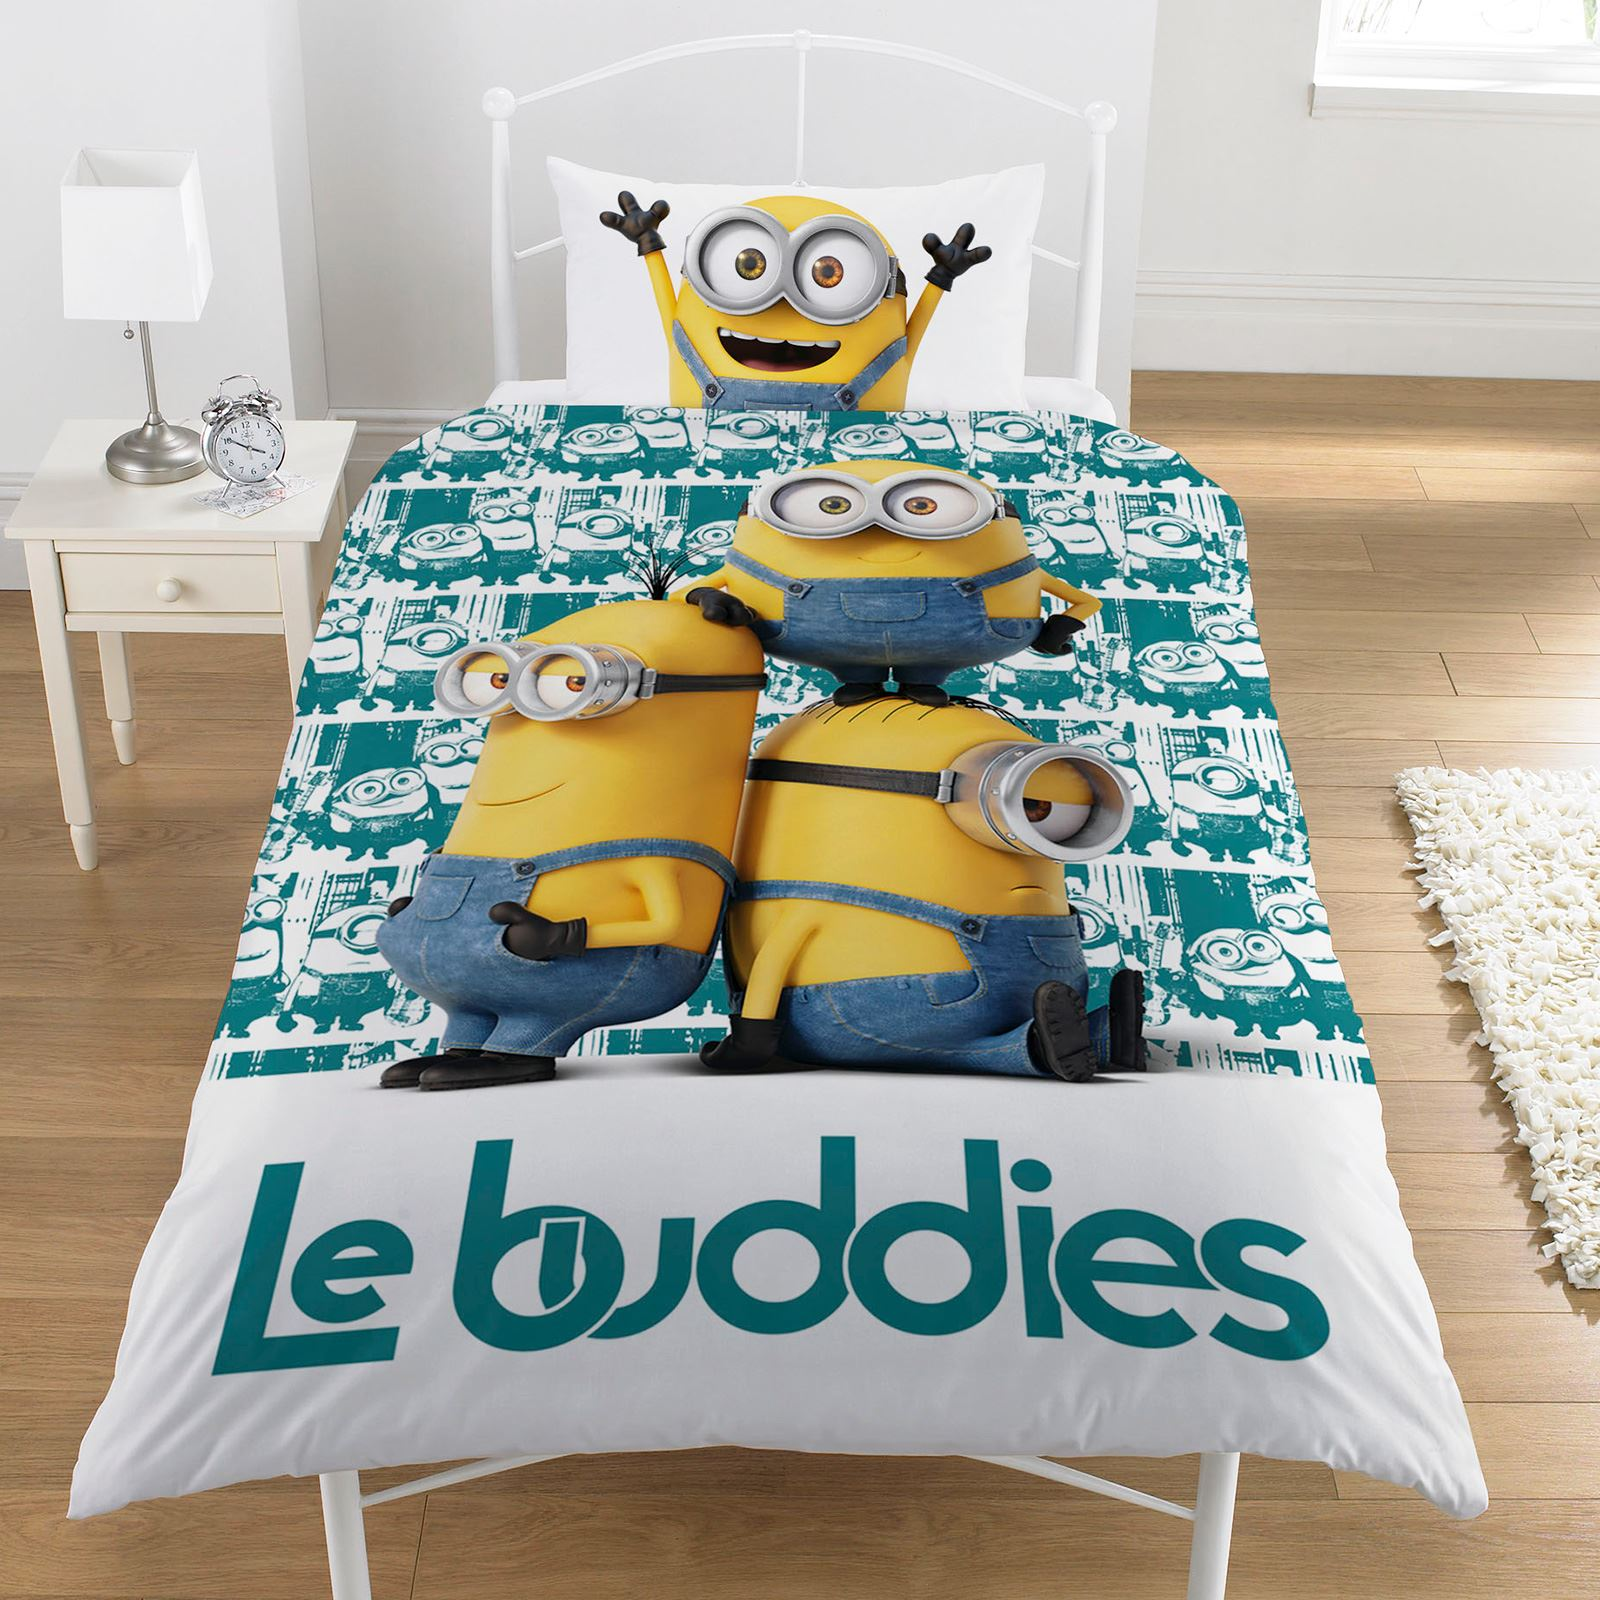 jungen kinder charakter einzel bettw sche sets ninjago wwe pokemon mehr ebay. Black Bedroom Furniture Sets. Home Design Ideas